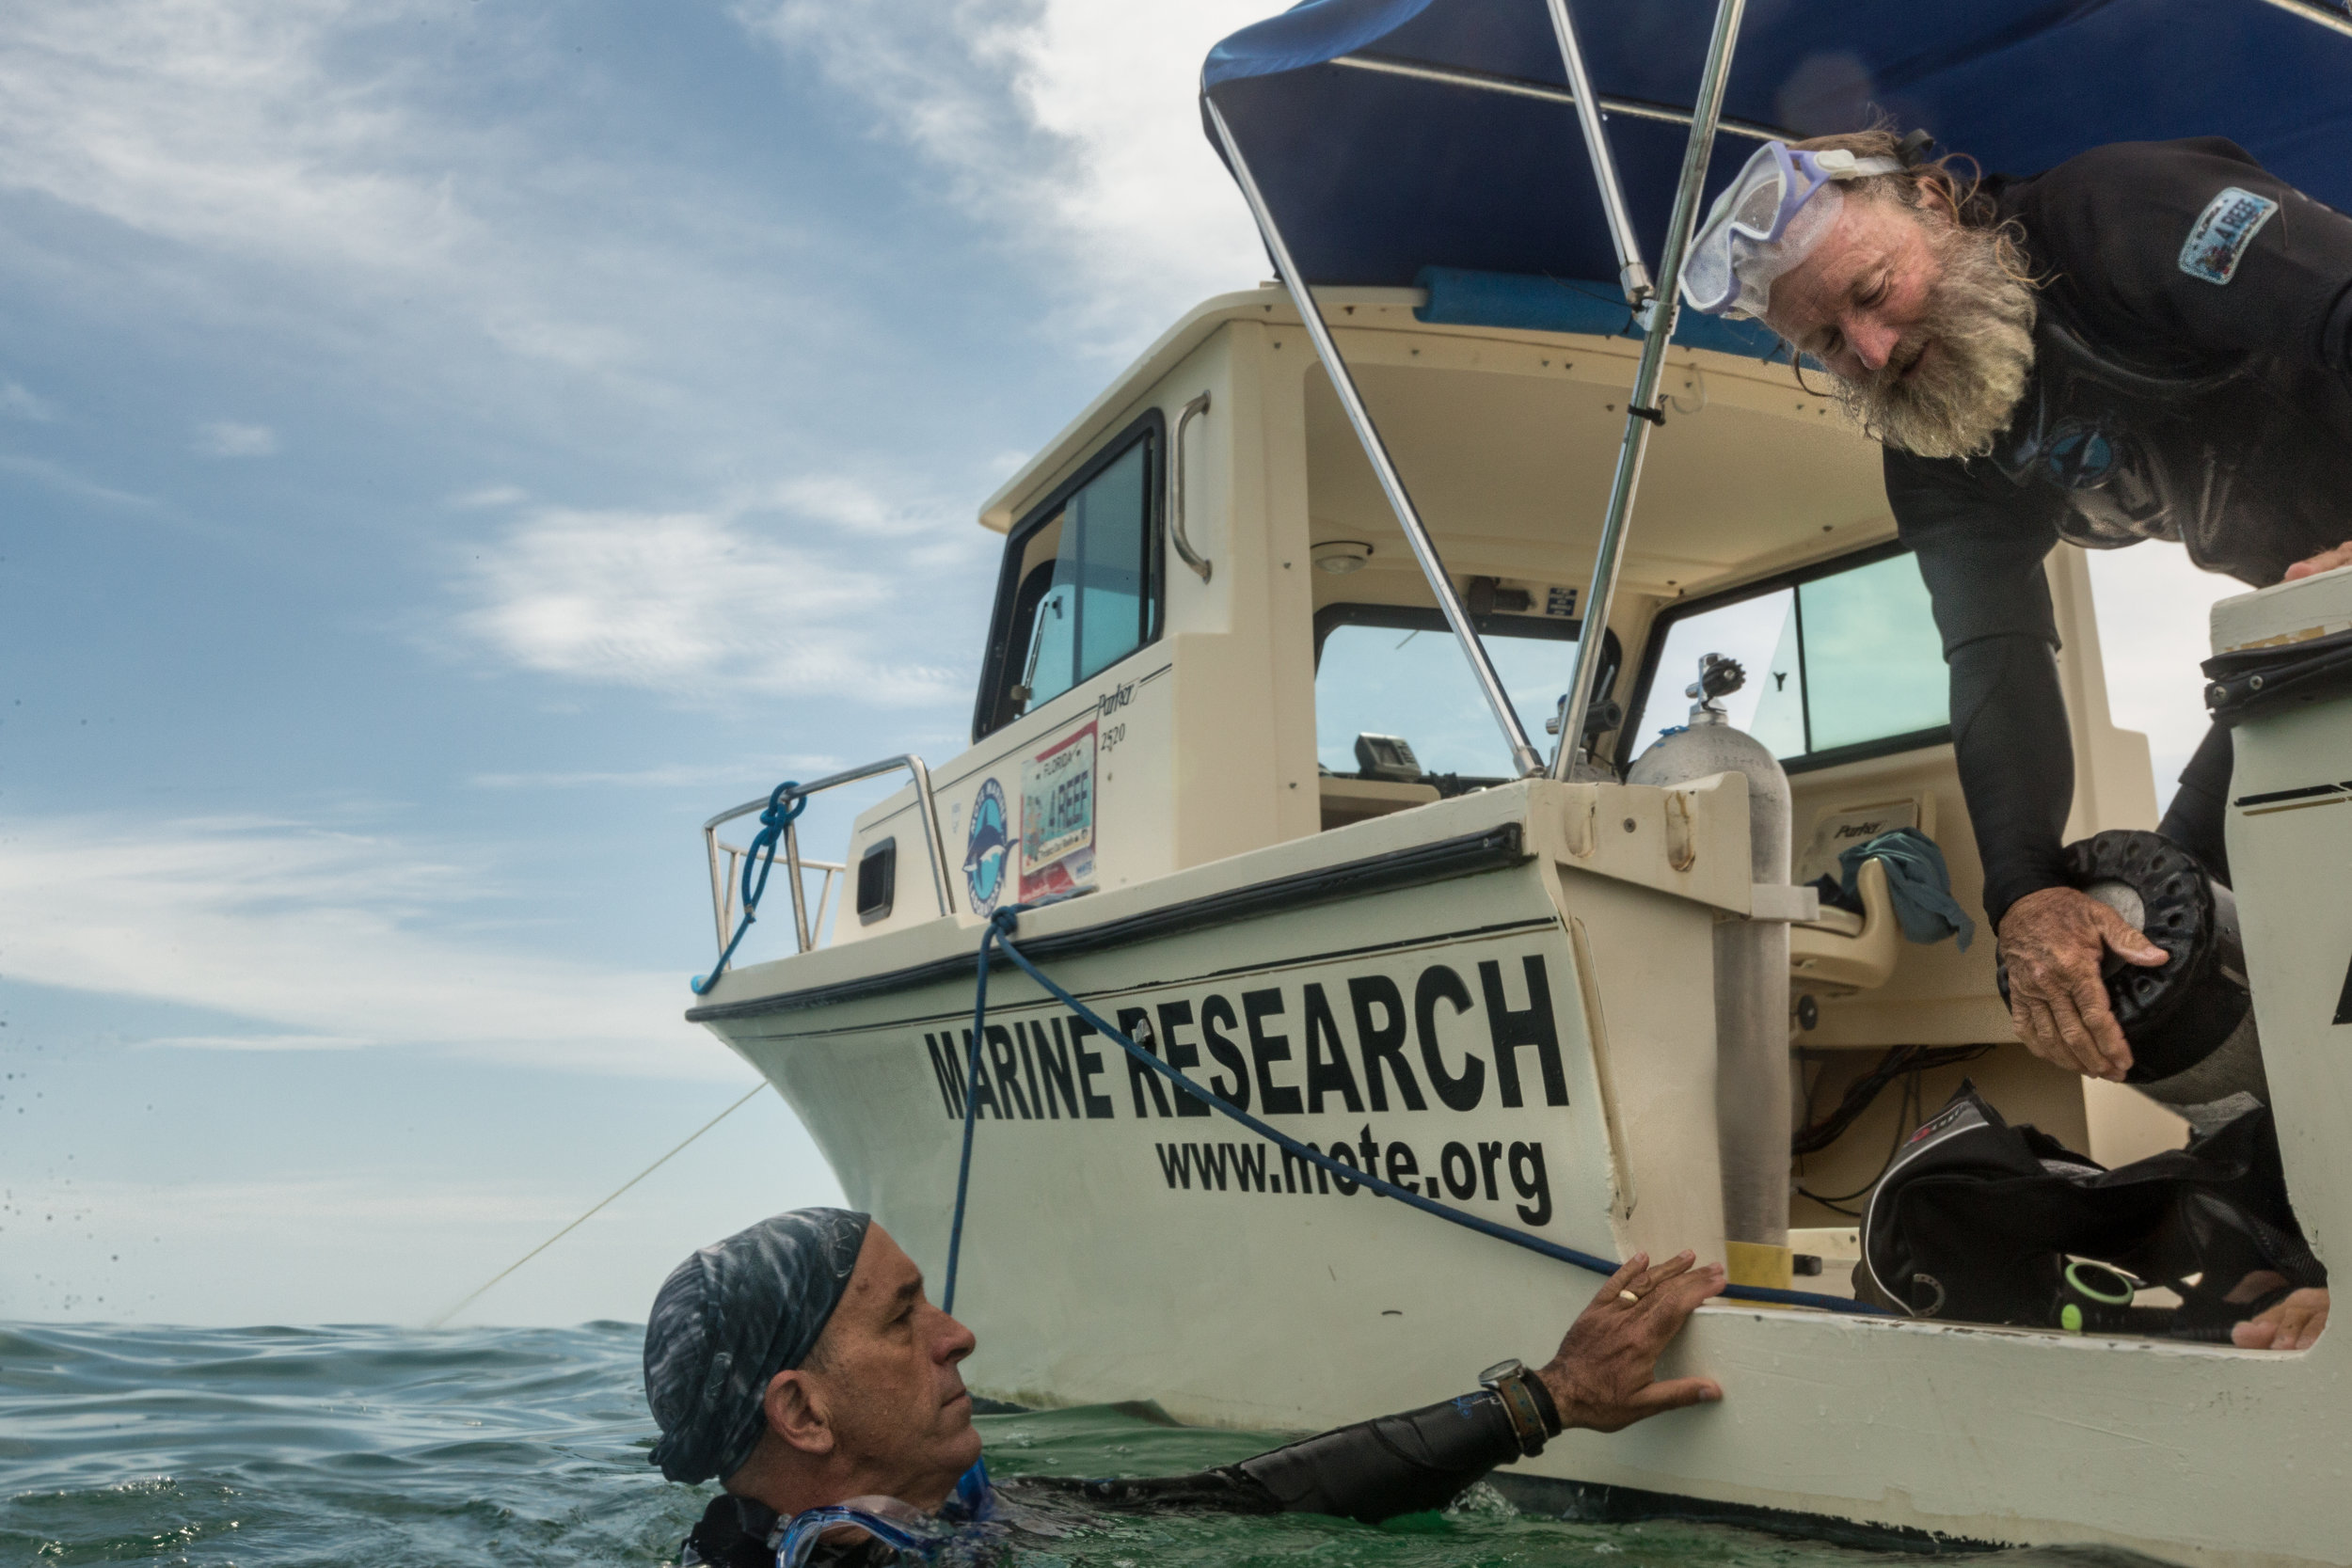 Executive Director of the International Center for Coral Reef Research & Restoration, Dr. Dave Vaughan (on boat) and Jacksonville University professor Dr. Dan McCarthy (in water) surface after outplanting coral fragments.